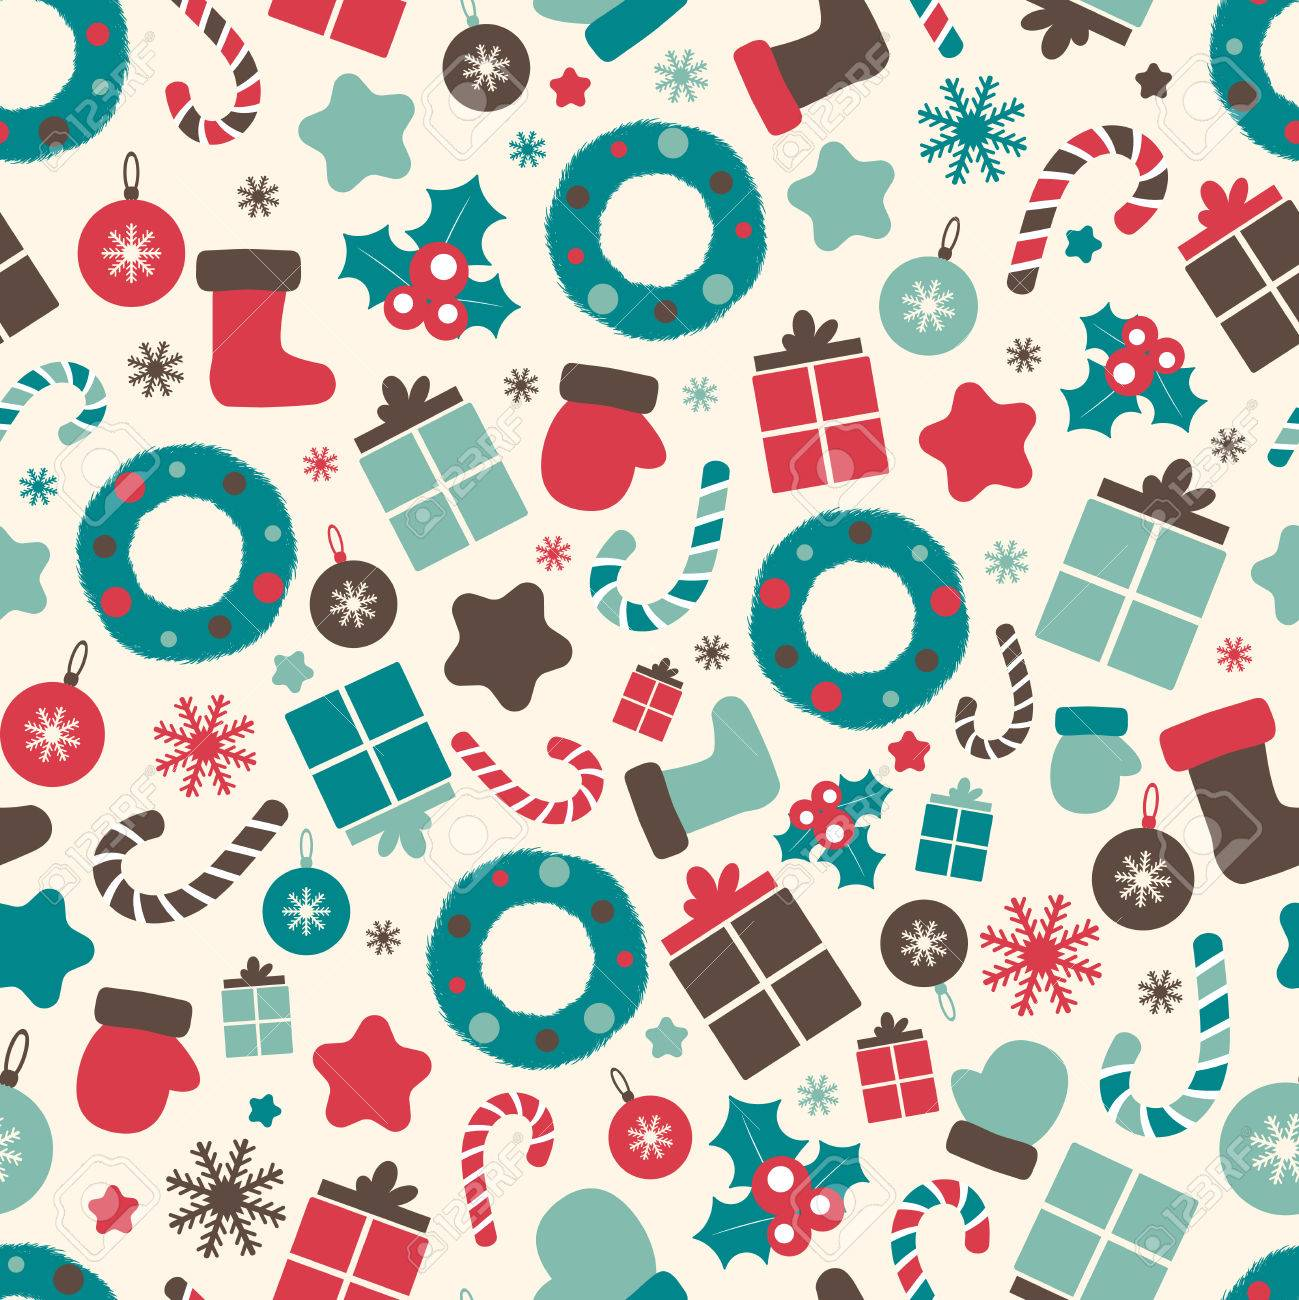 Christmas Pattern.Retro Style Christmas Patterns Winter Background Endless Texture